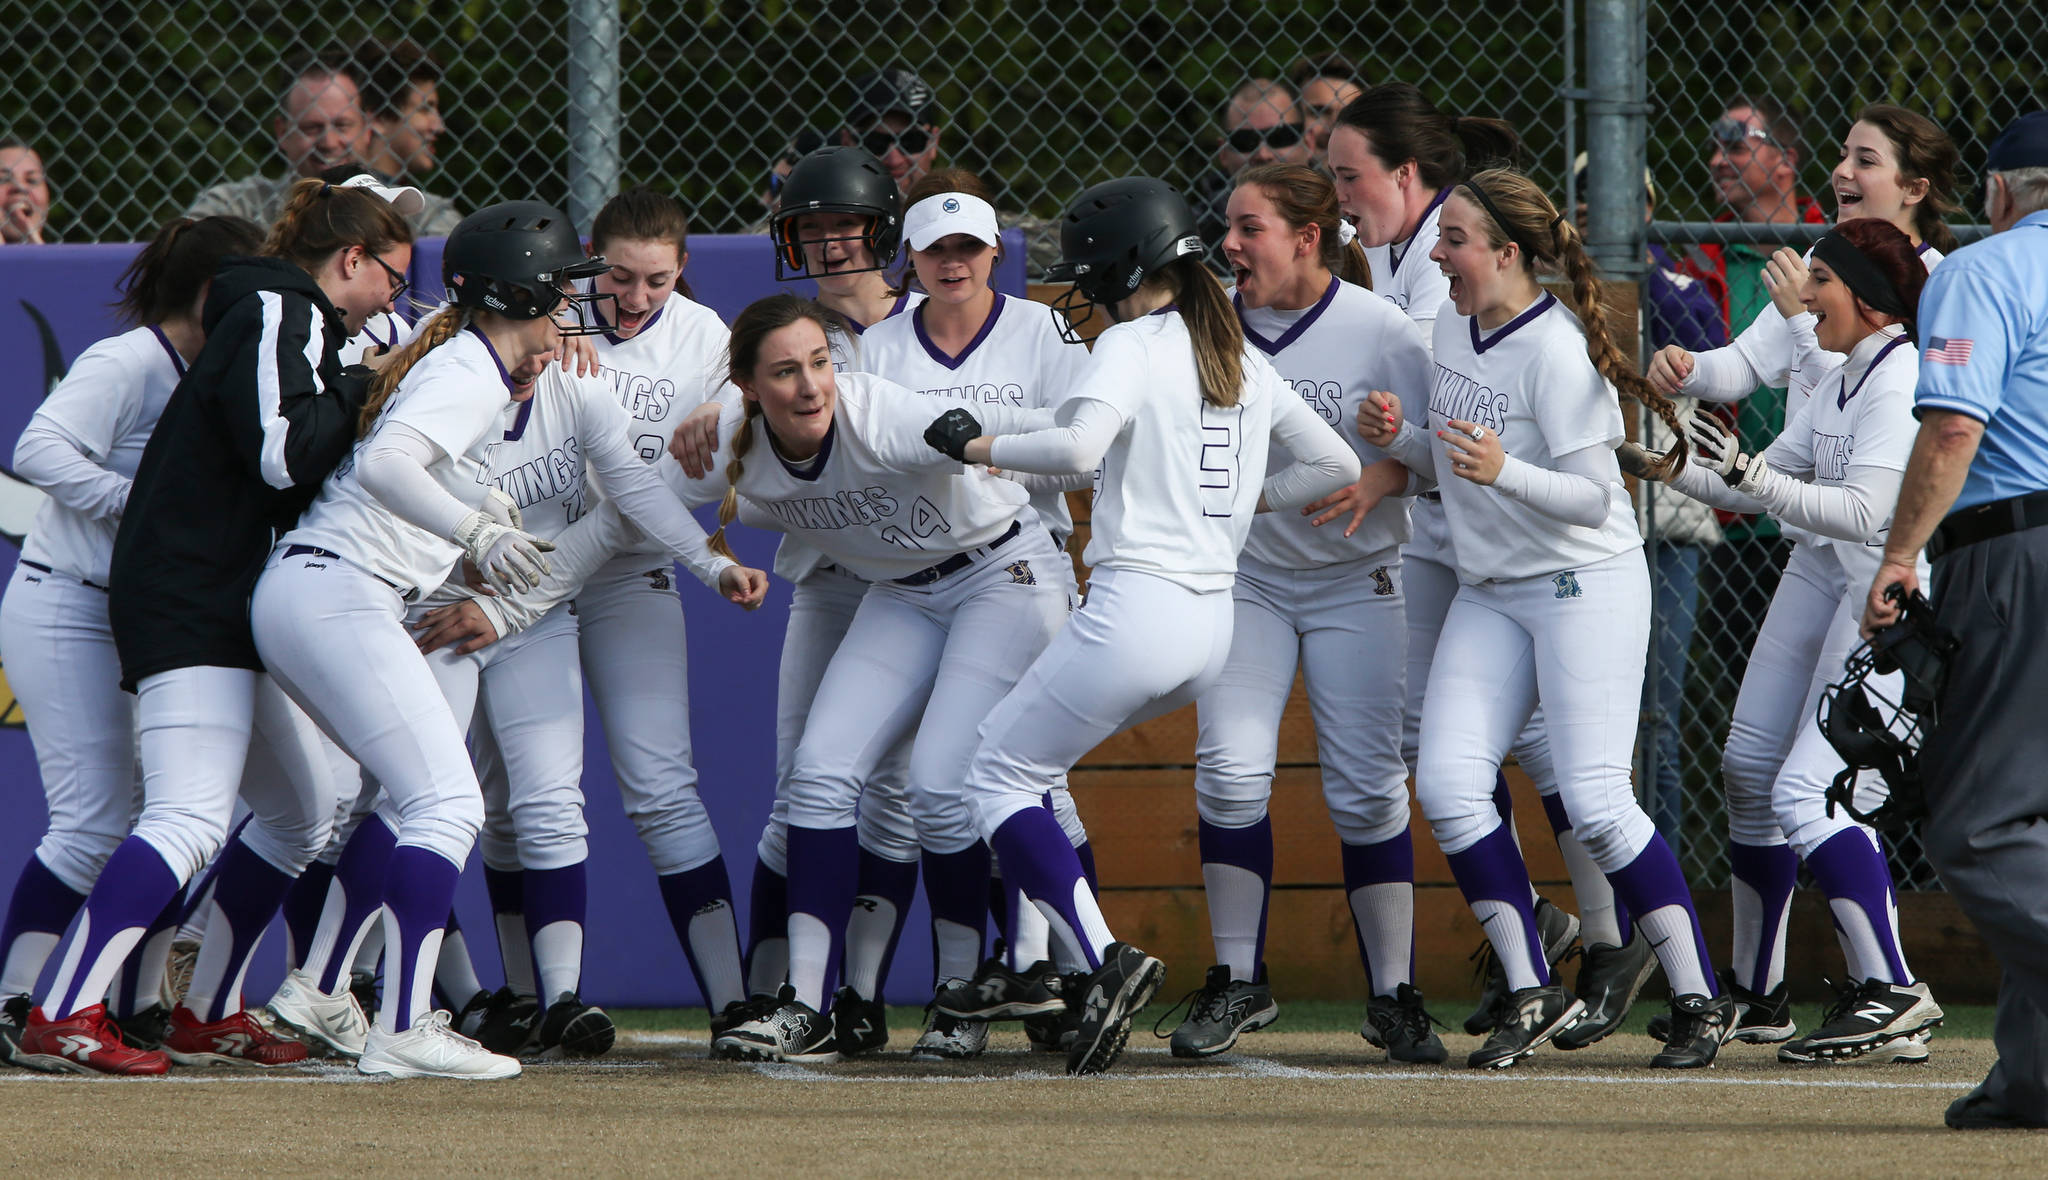 Lake Steven's Sara Johnson (14) holds back celebrating teammates so Emma Fortney (3) can touch home plate after hitting a 2-run homer to beat undefeated Jackson 3-1 on Tuesday, May 1, in Lake Stevens. (Andy Bronson / The Herald)